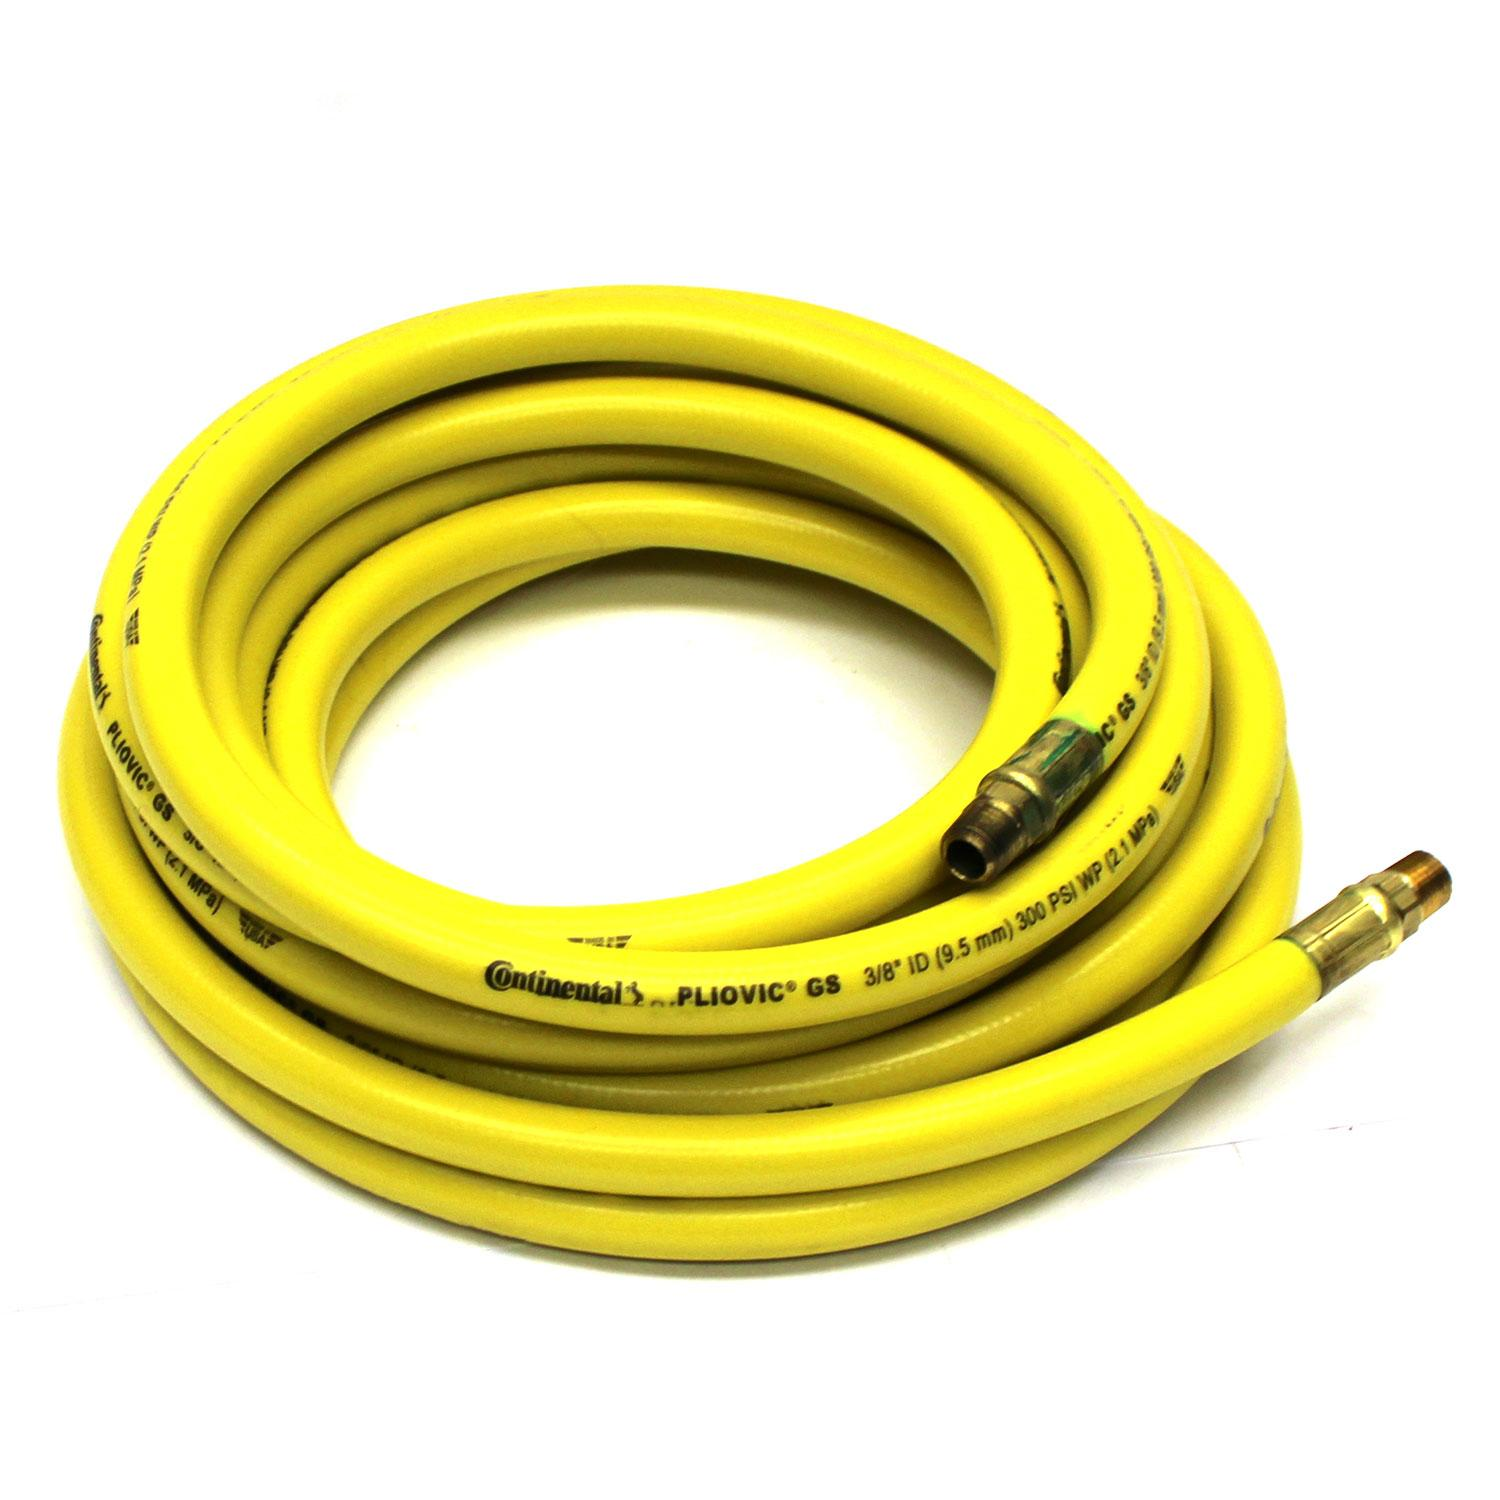 3/8 PVC/Rubber Hybrid Air Hose - 25 Feet